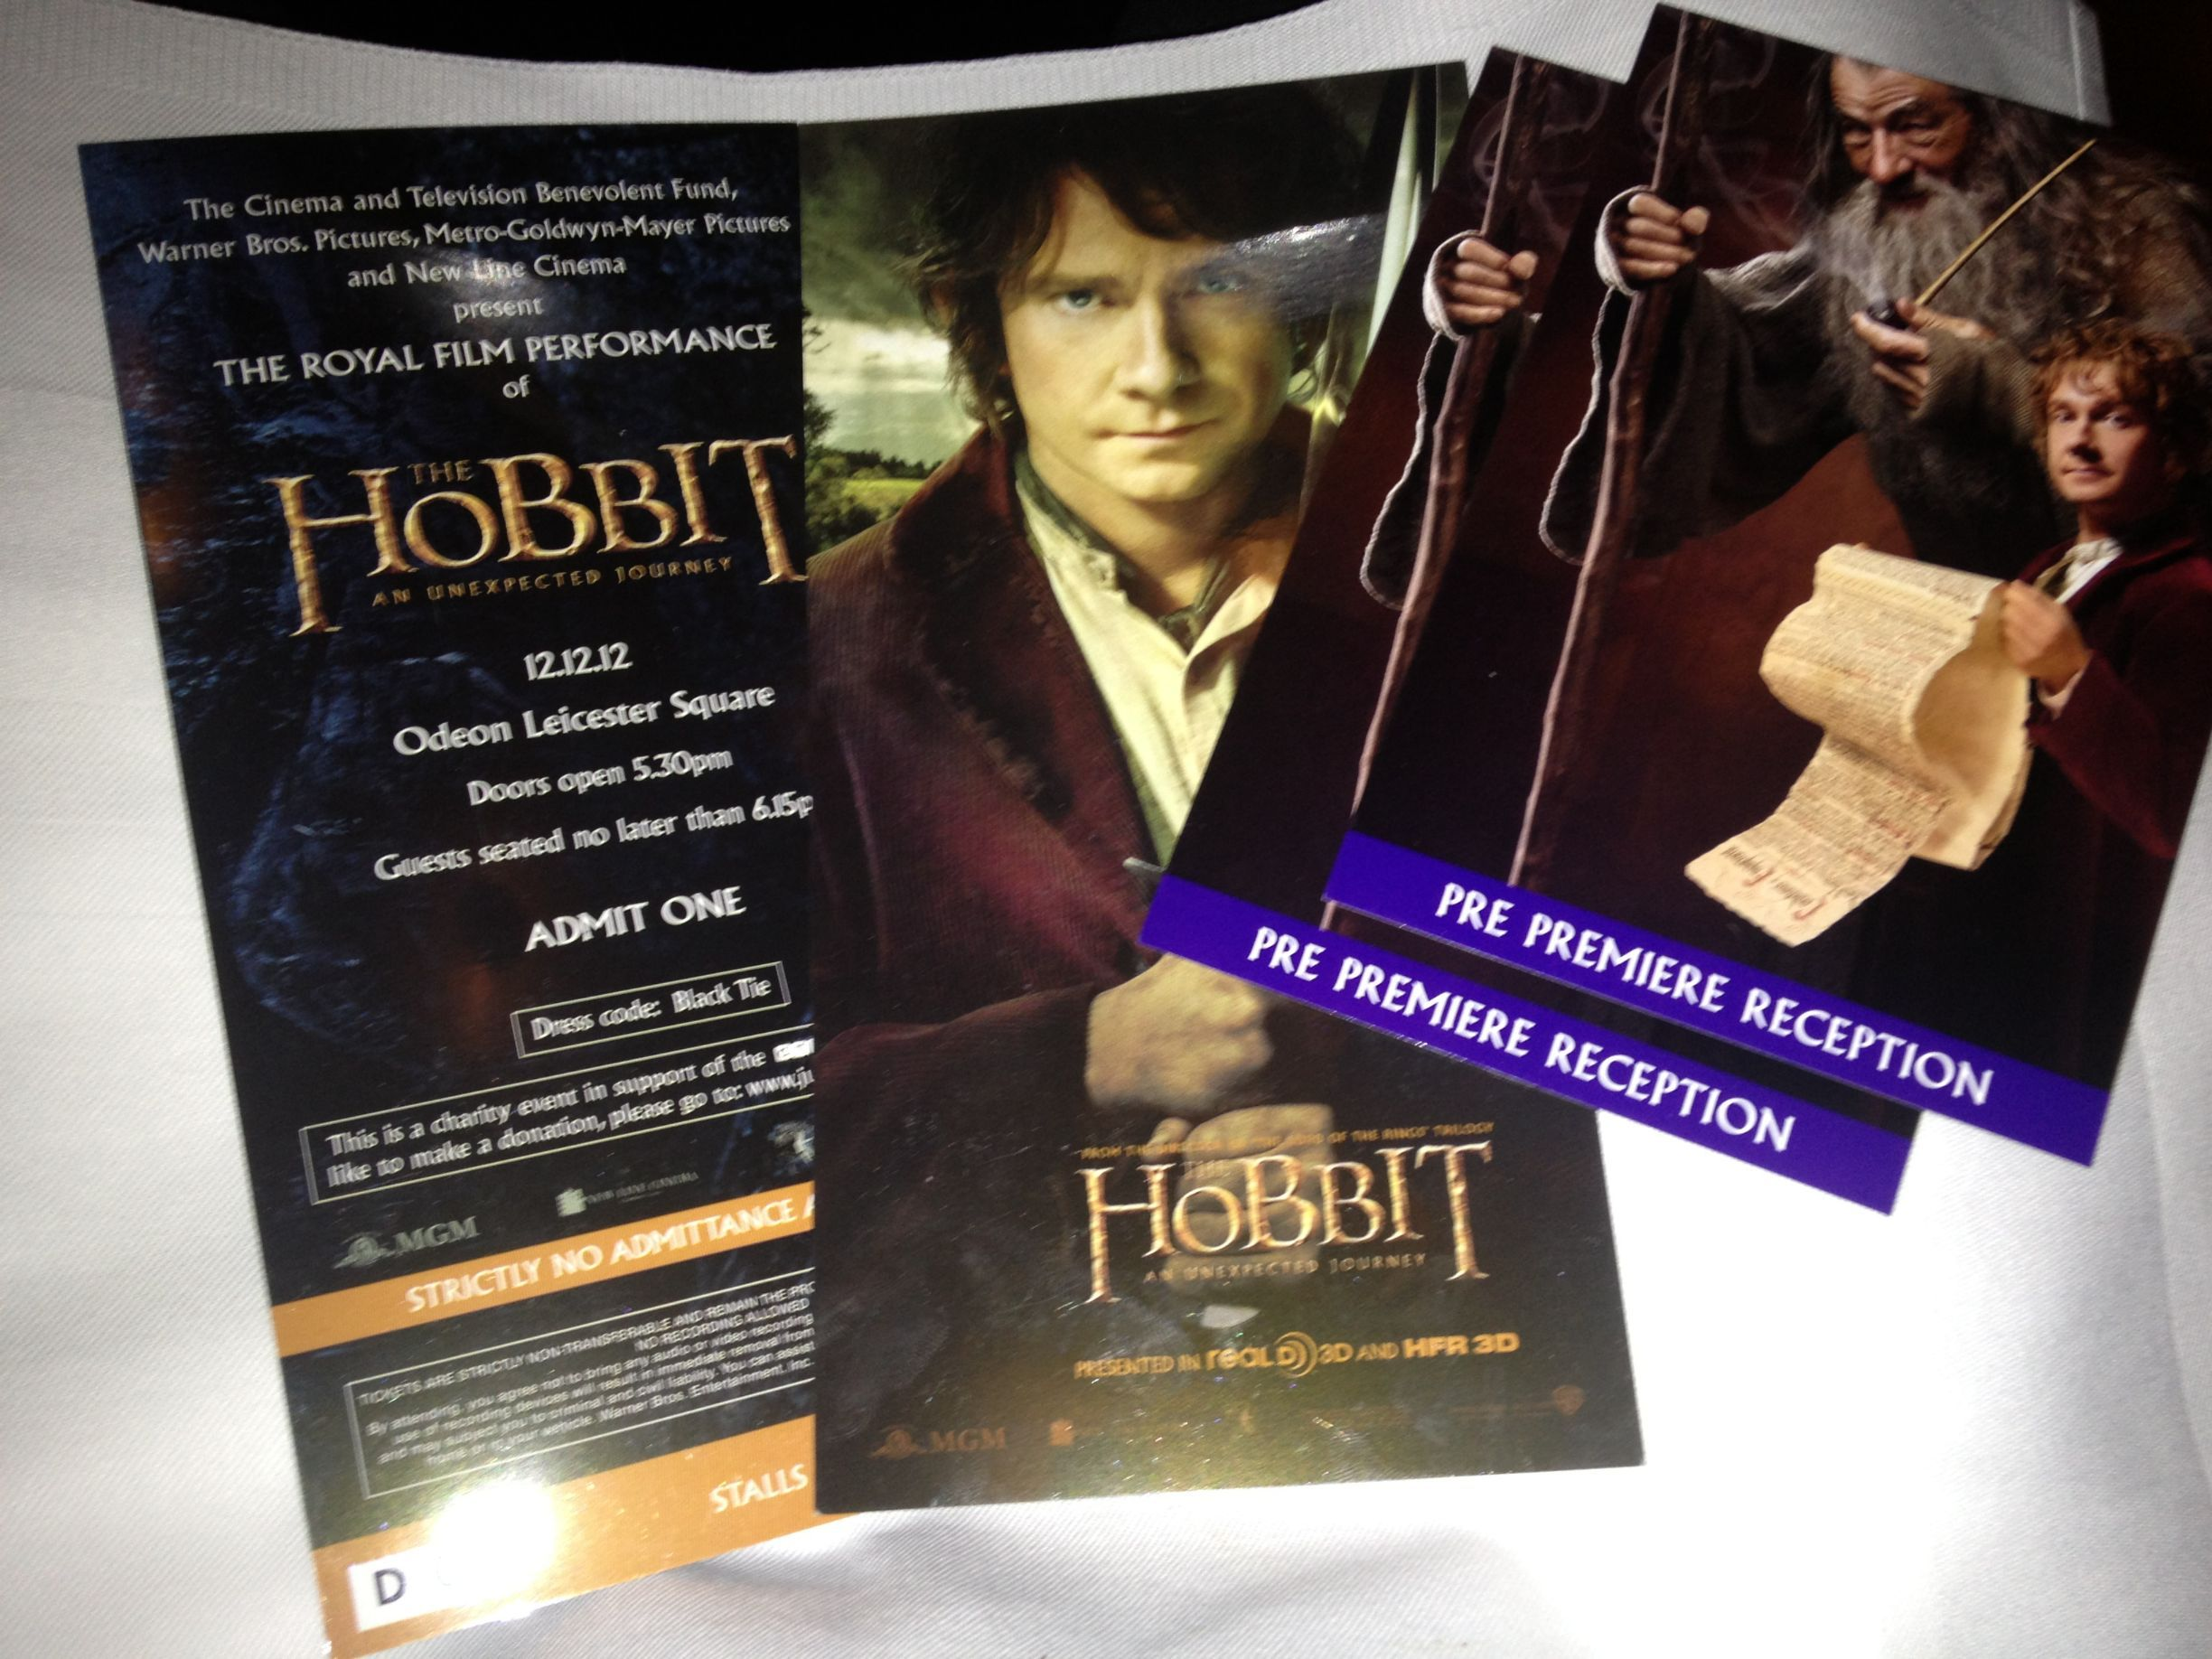 Pics from The Hobbit Royal Premiere in London last night